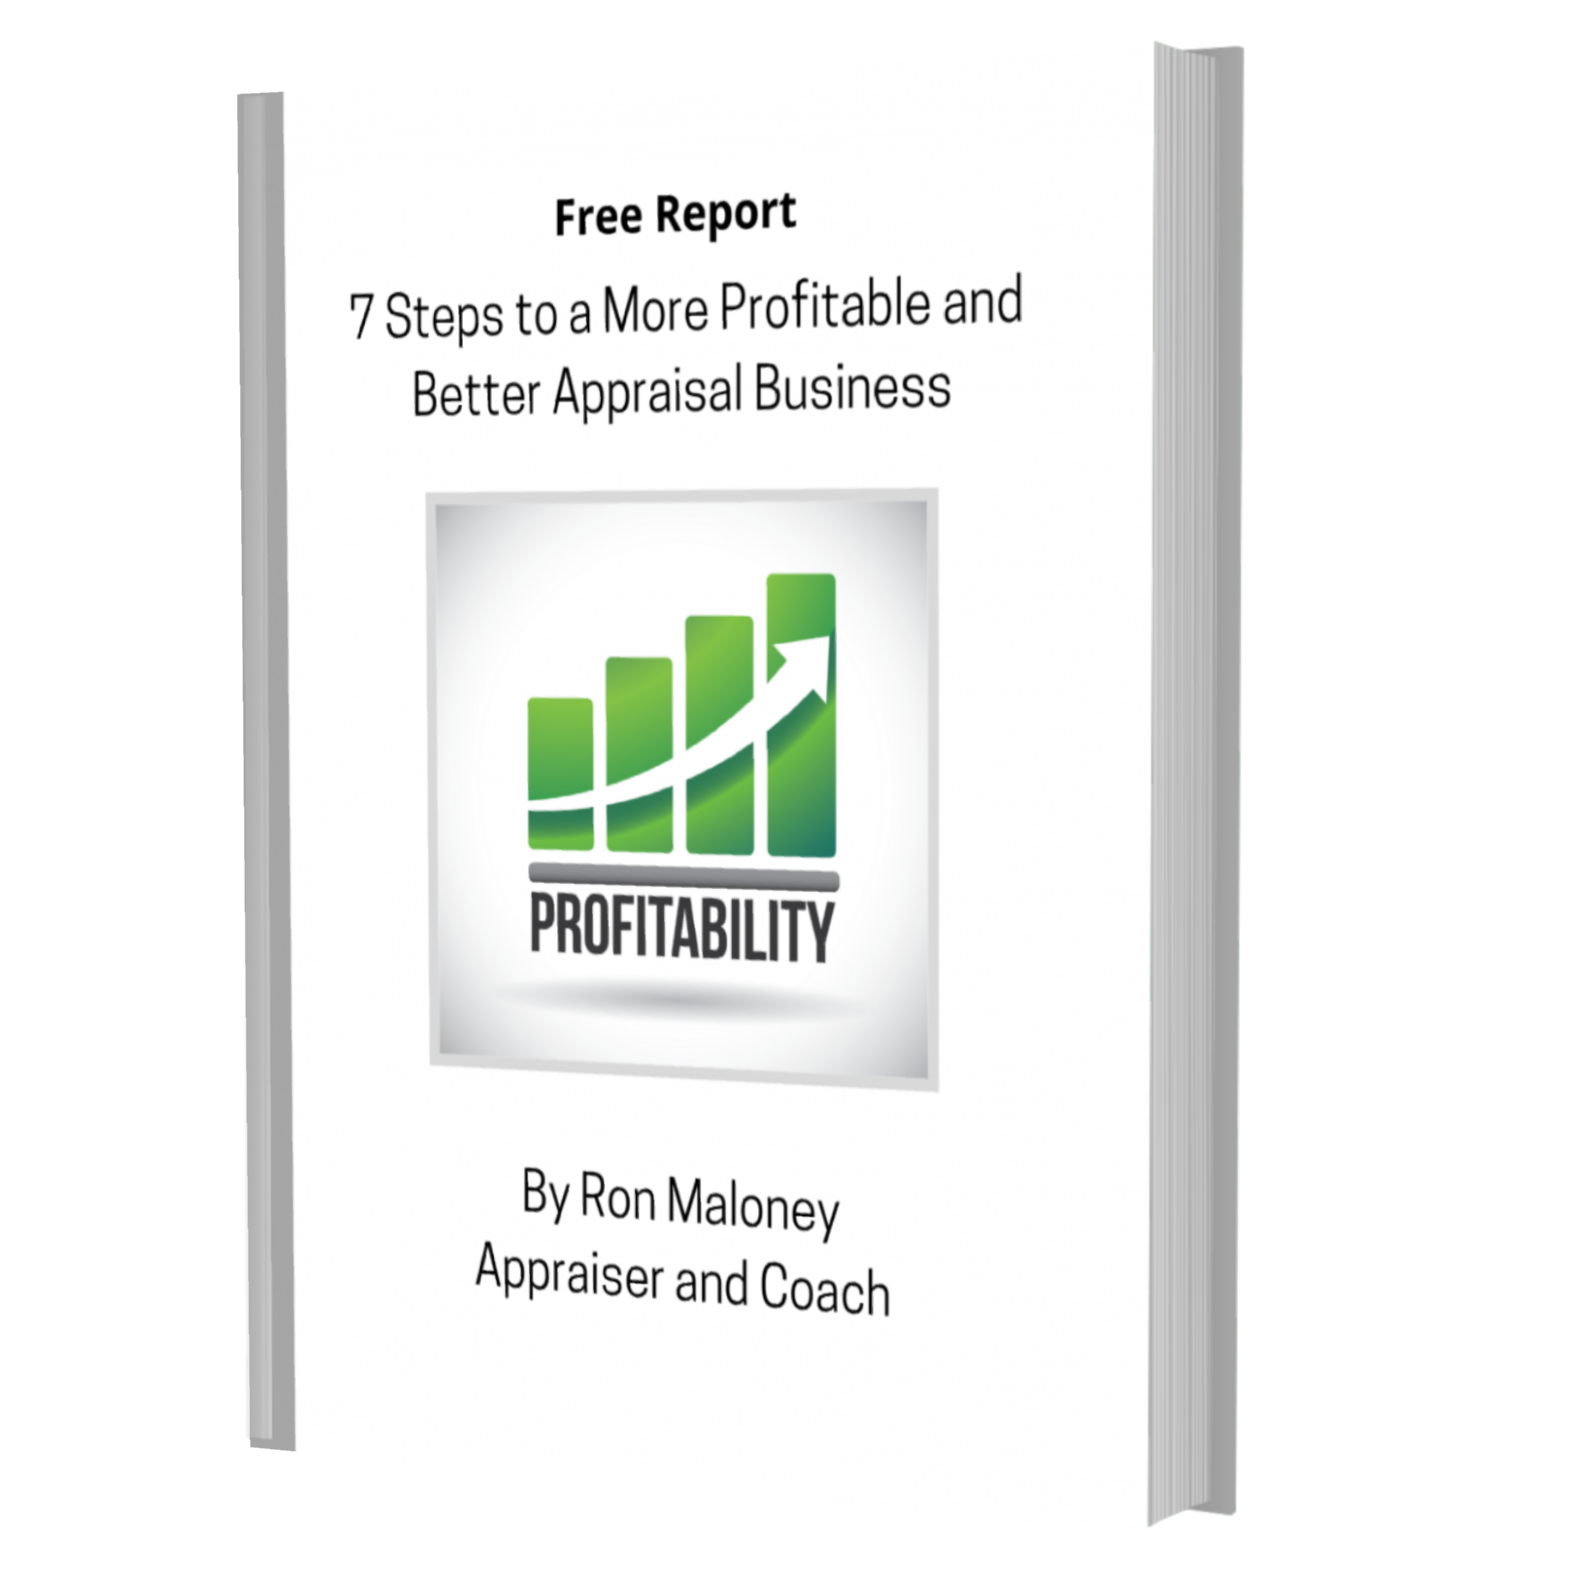 7 Steps to a More Profitable and Better Appraisal Business Free Report